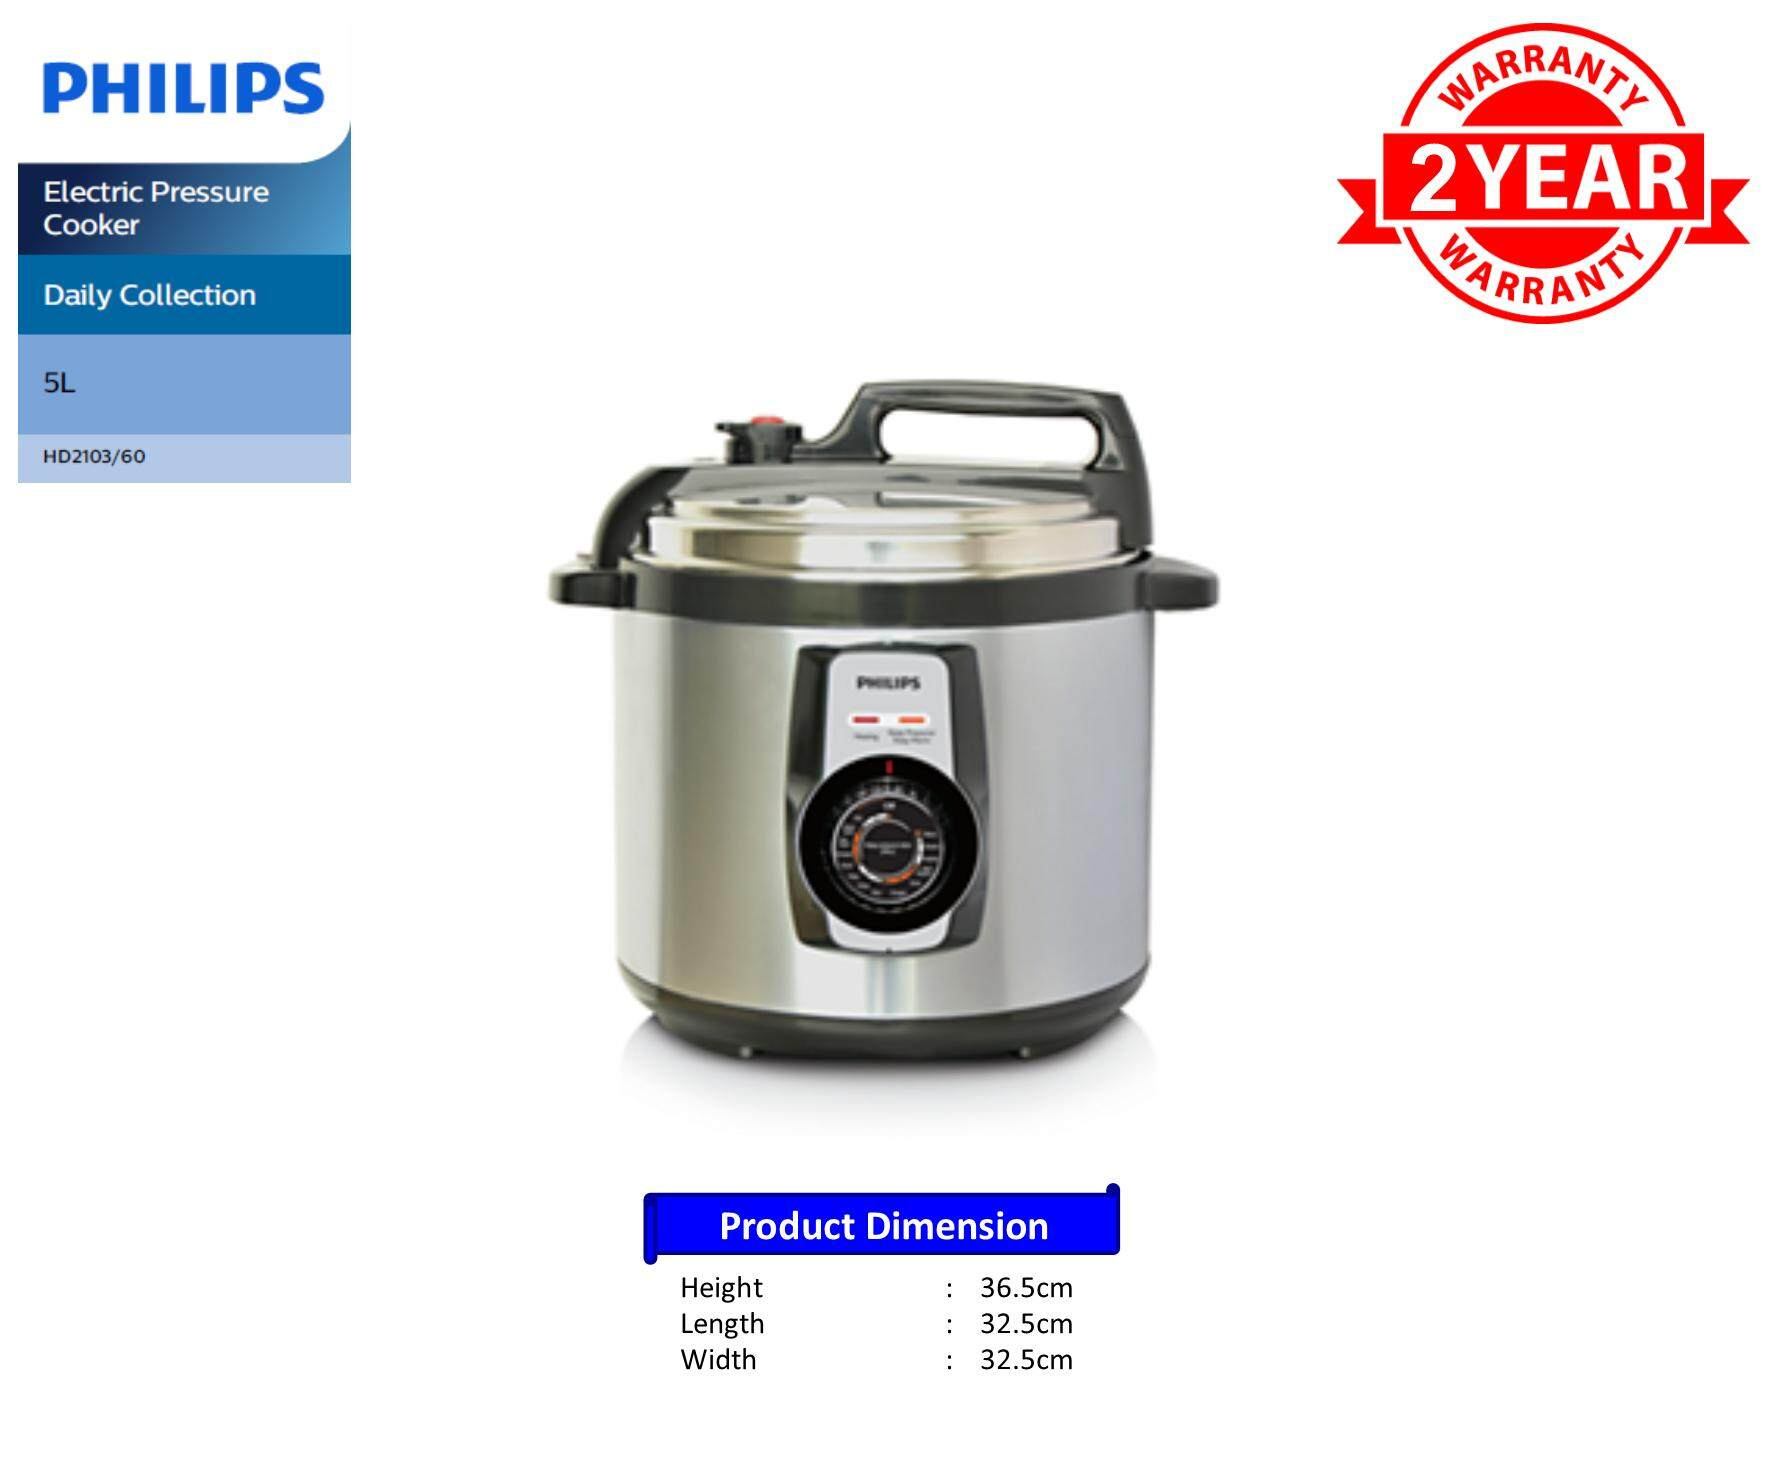 PHILIPS DAILY COLLECTION ELECTRIC PRESSURE COOKER HD2103 5L